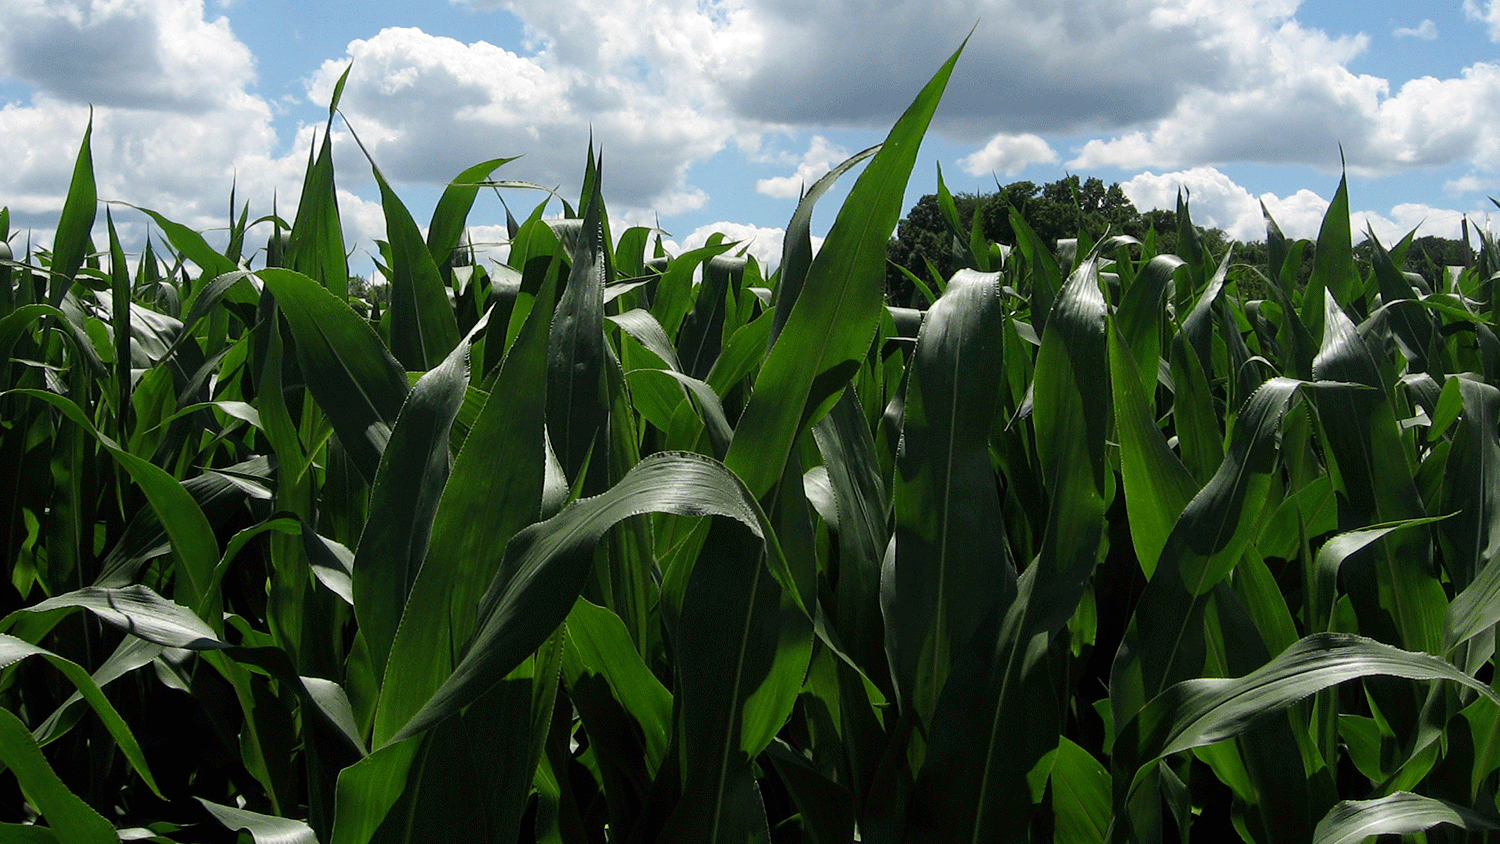 Conservis_RowCropManagementSoftware_Folder_Corn